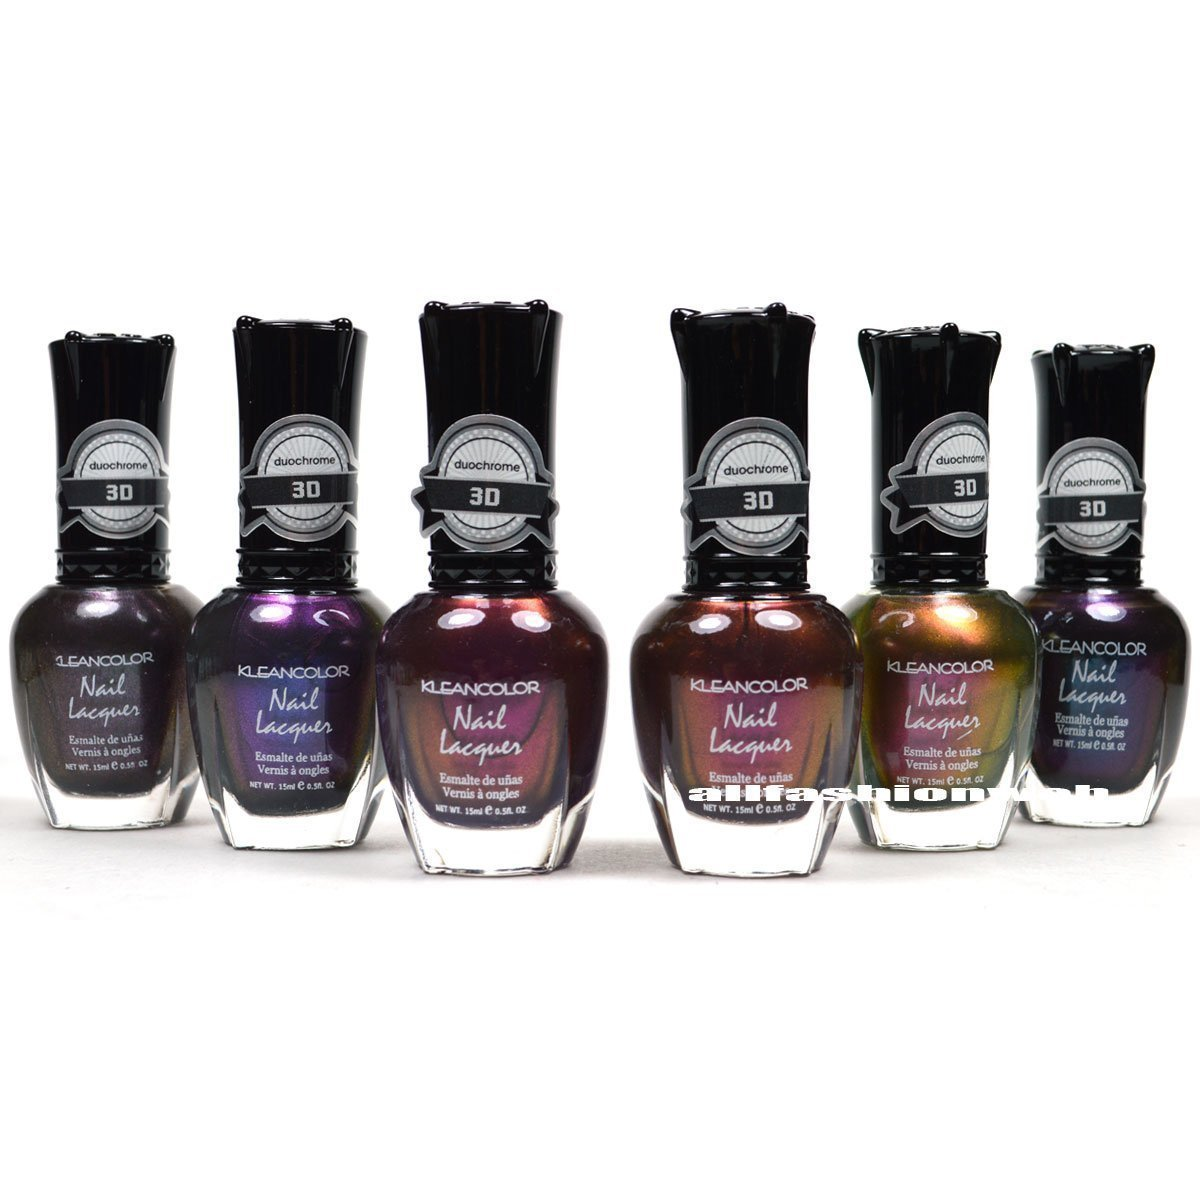 Amazon.com : New Kleancolor 3D Duochrome Nail Polish Set of 6 ...